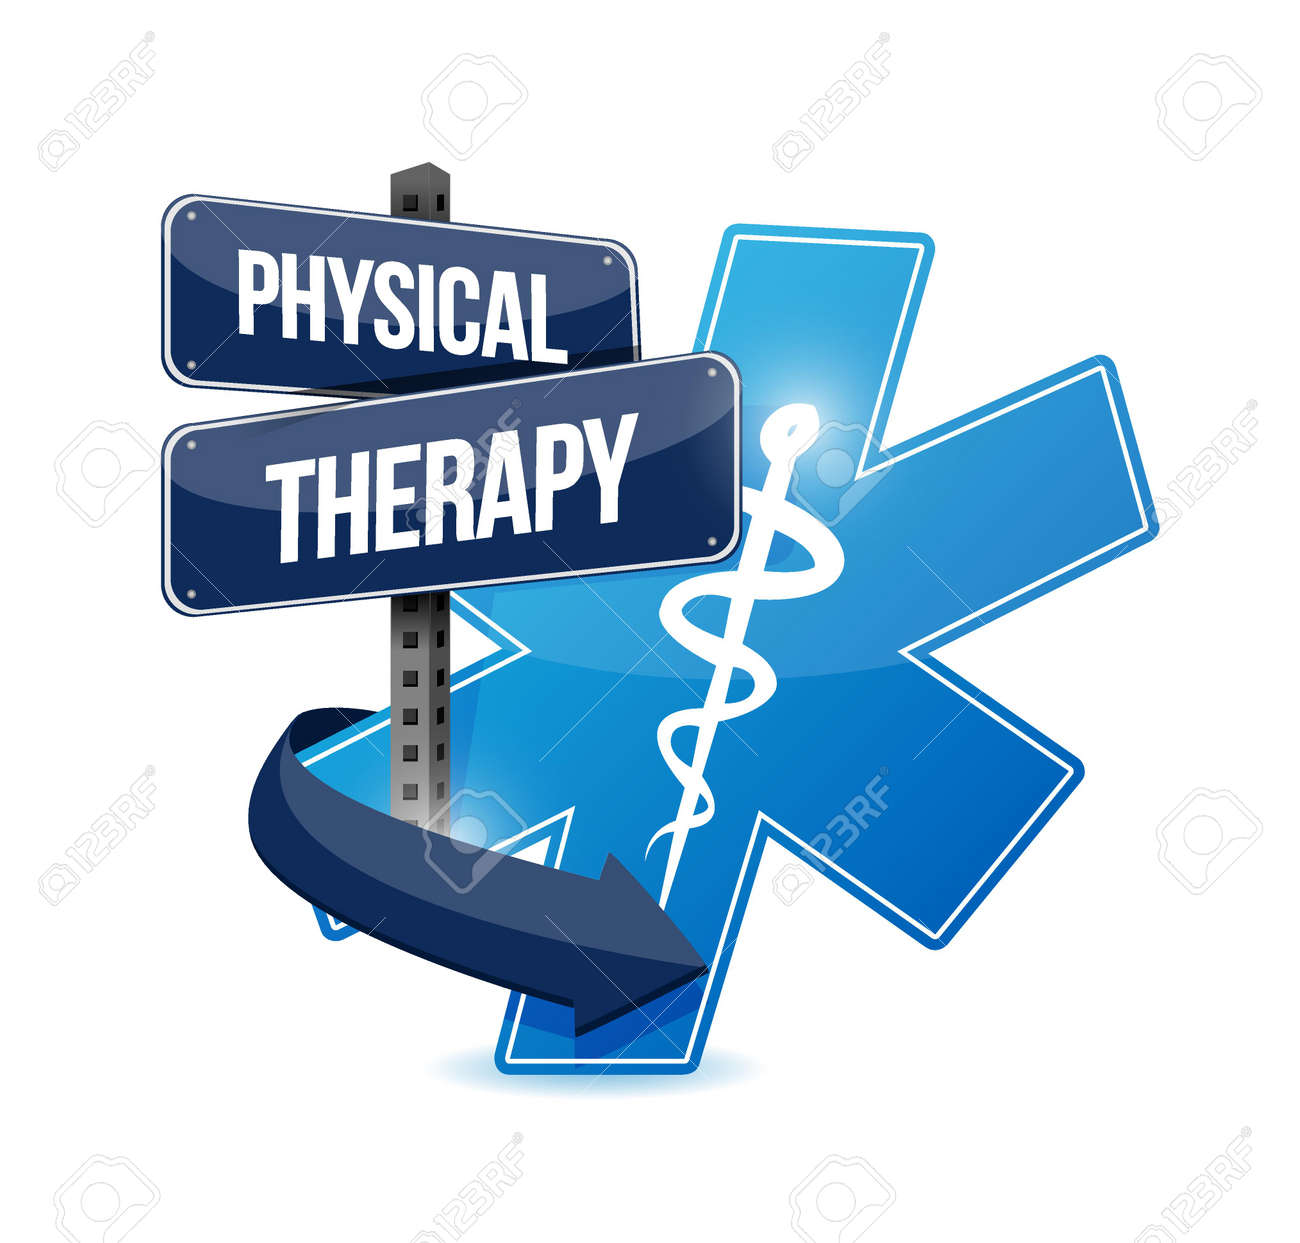 Physical Therapy Medical Symbol Isolated Sign Illustration Design